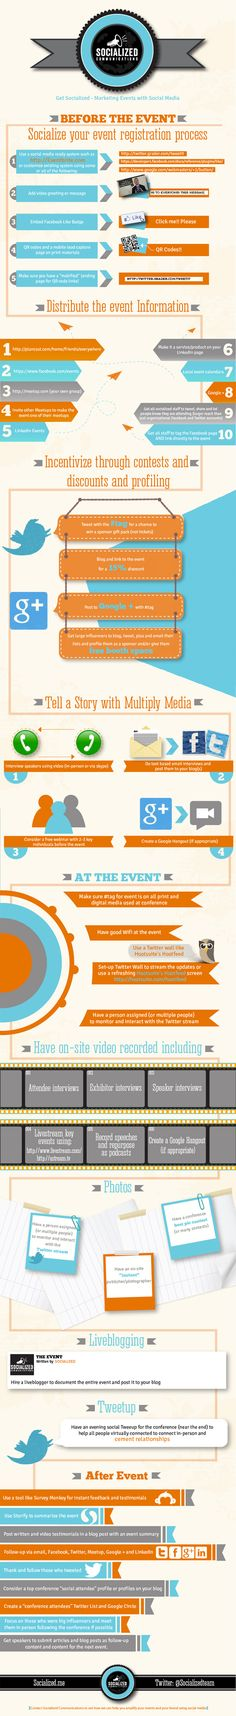 [INFOGRAFIK] Events & Social Media